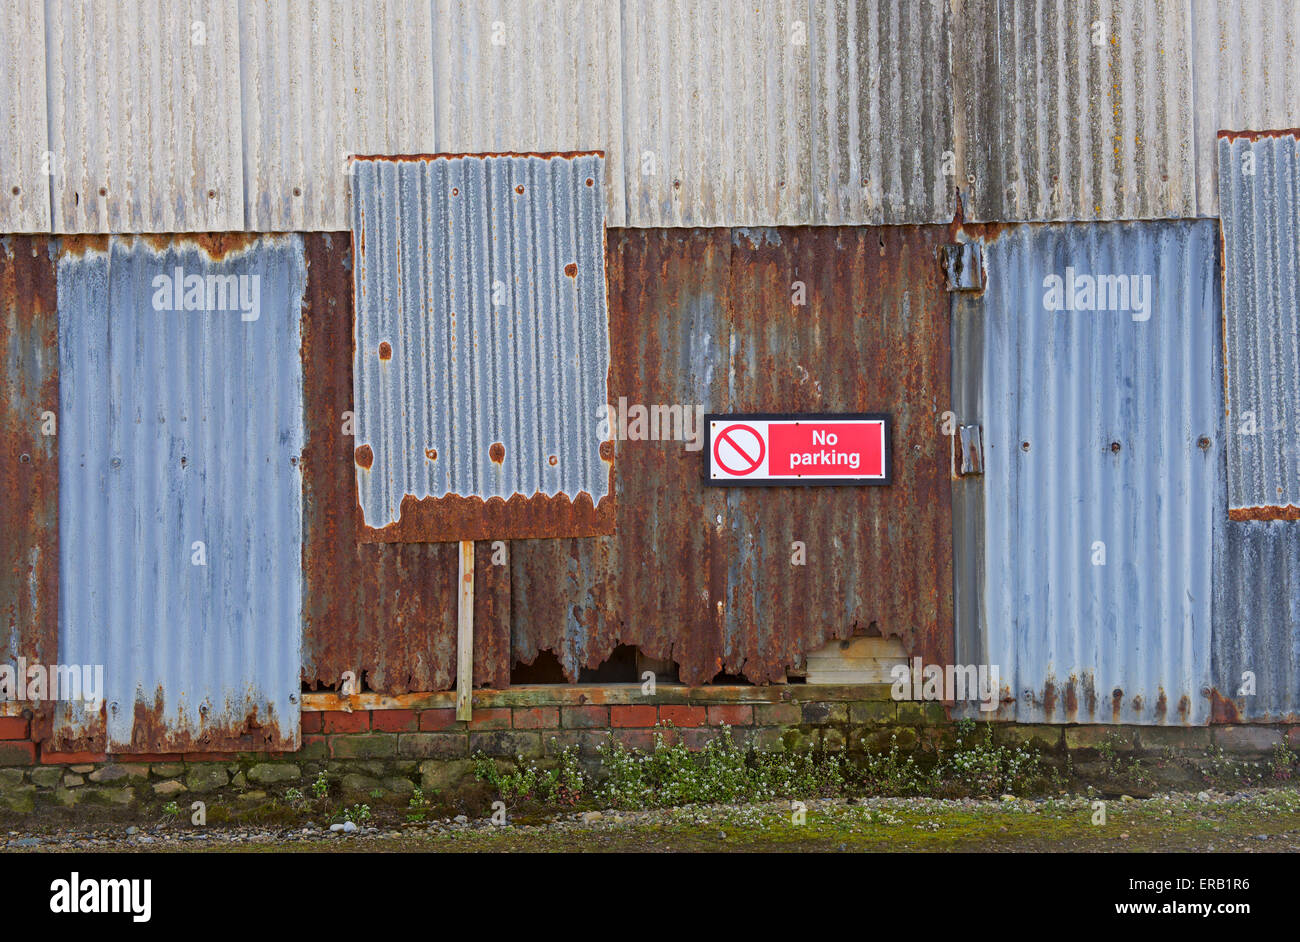 No Parking sign on wall, UK - Stock Image